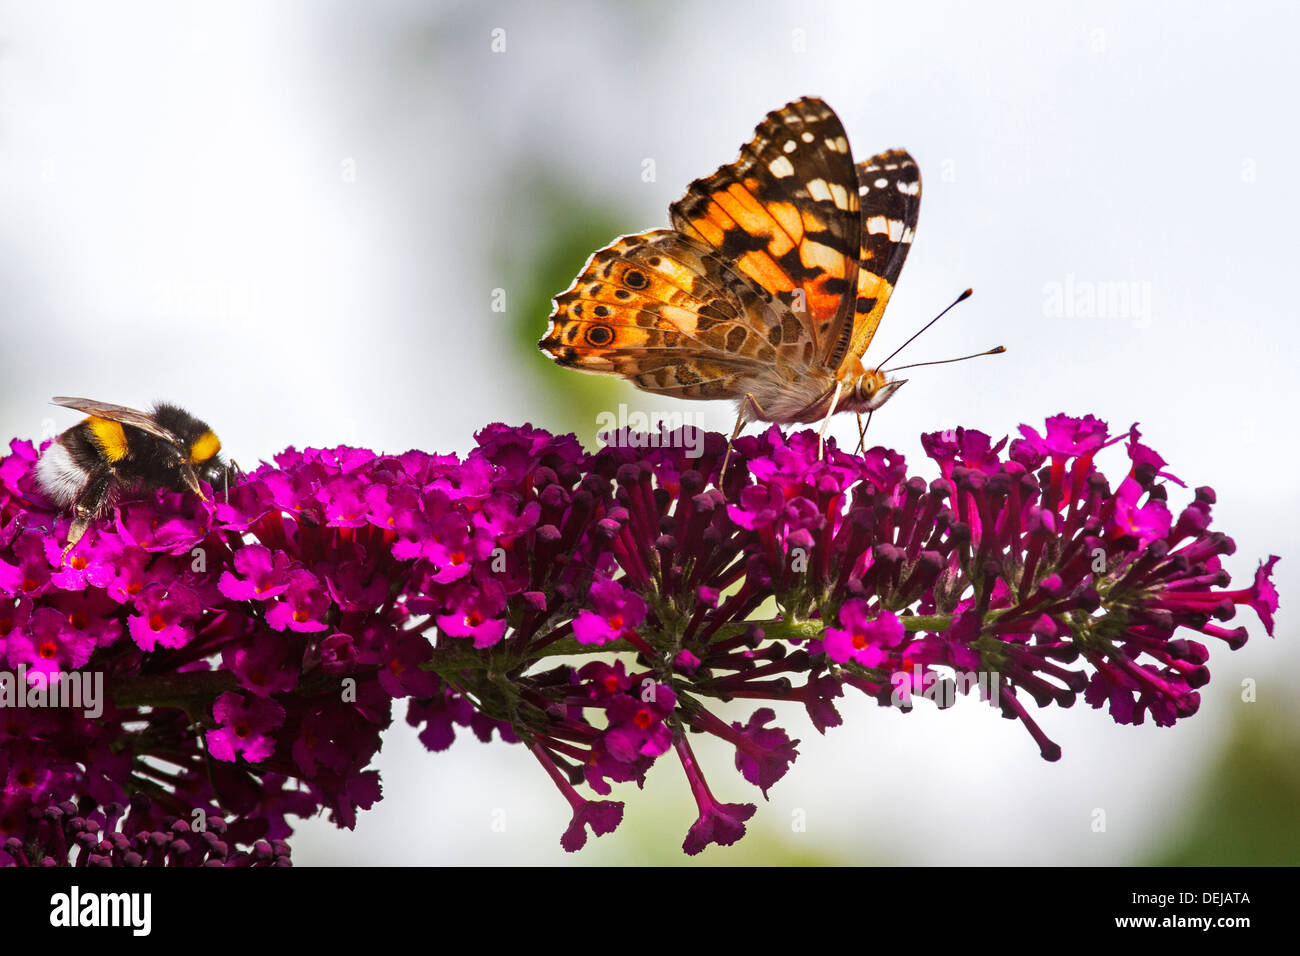 Painted Lady butterfly (Vanessa cardui) and buff-tailed / large earth bumblebee (Bombus terrestris) pollinating lilac flowers - Stock Image